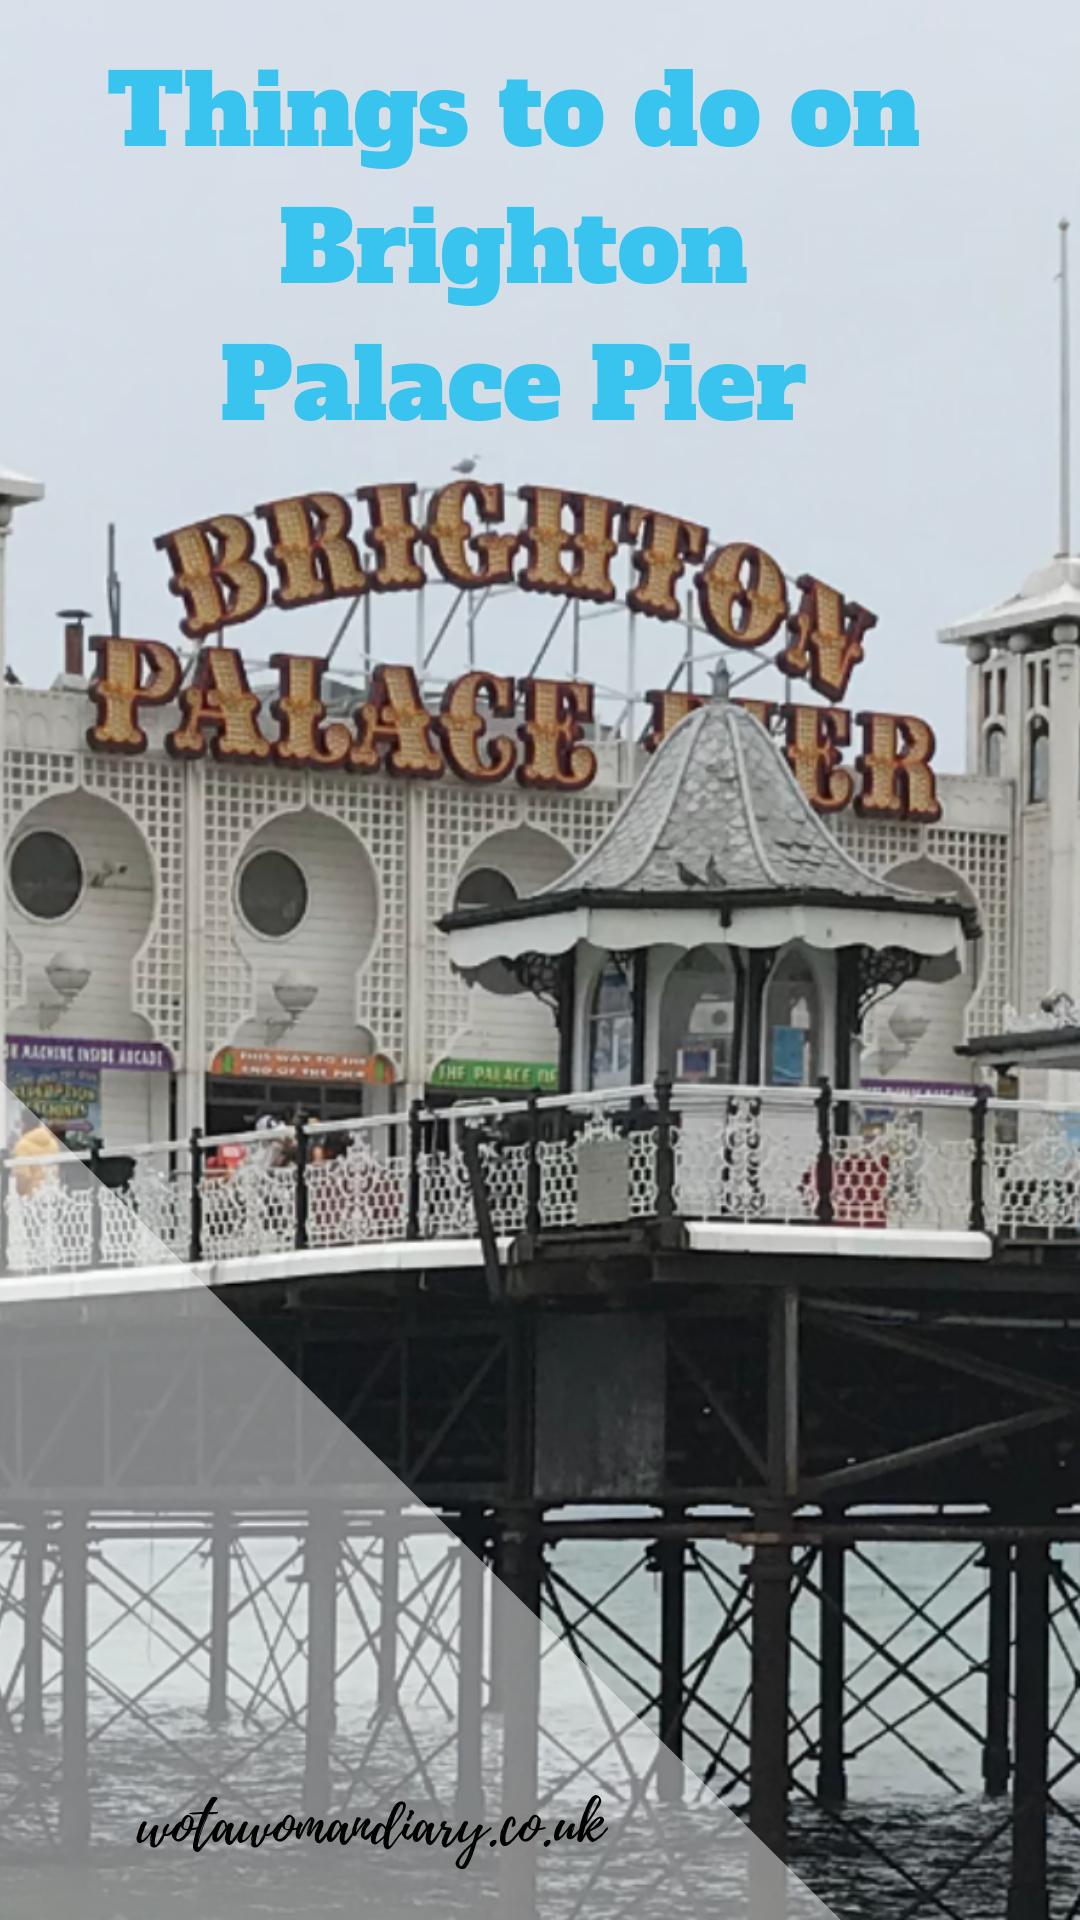 things to do on brighton palace pier text image